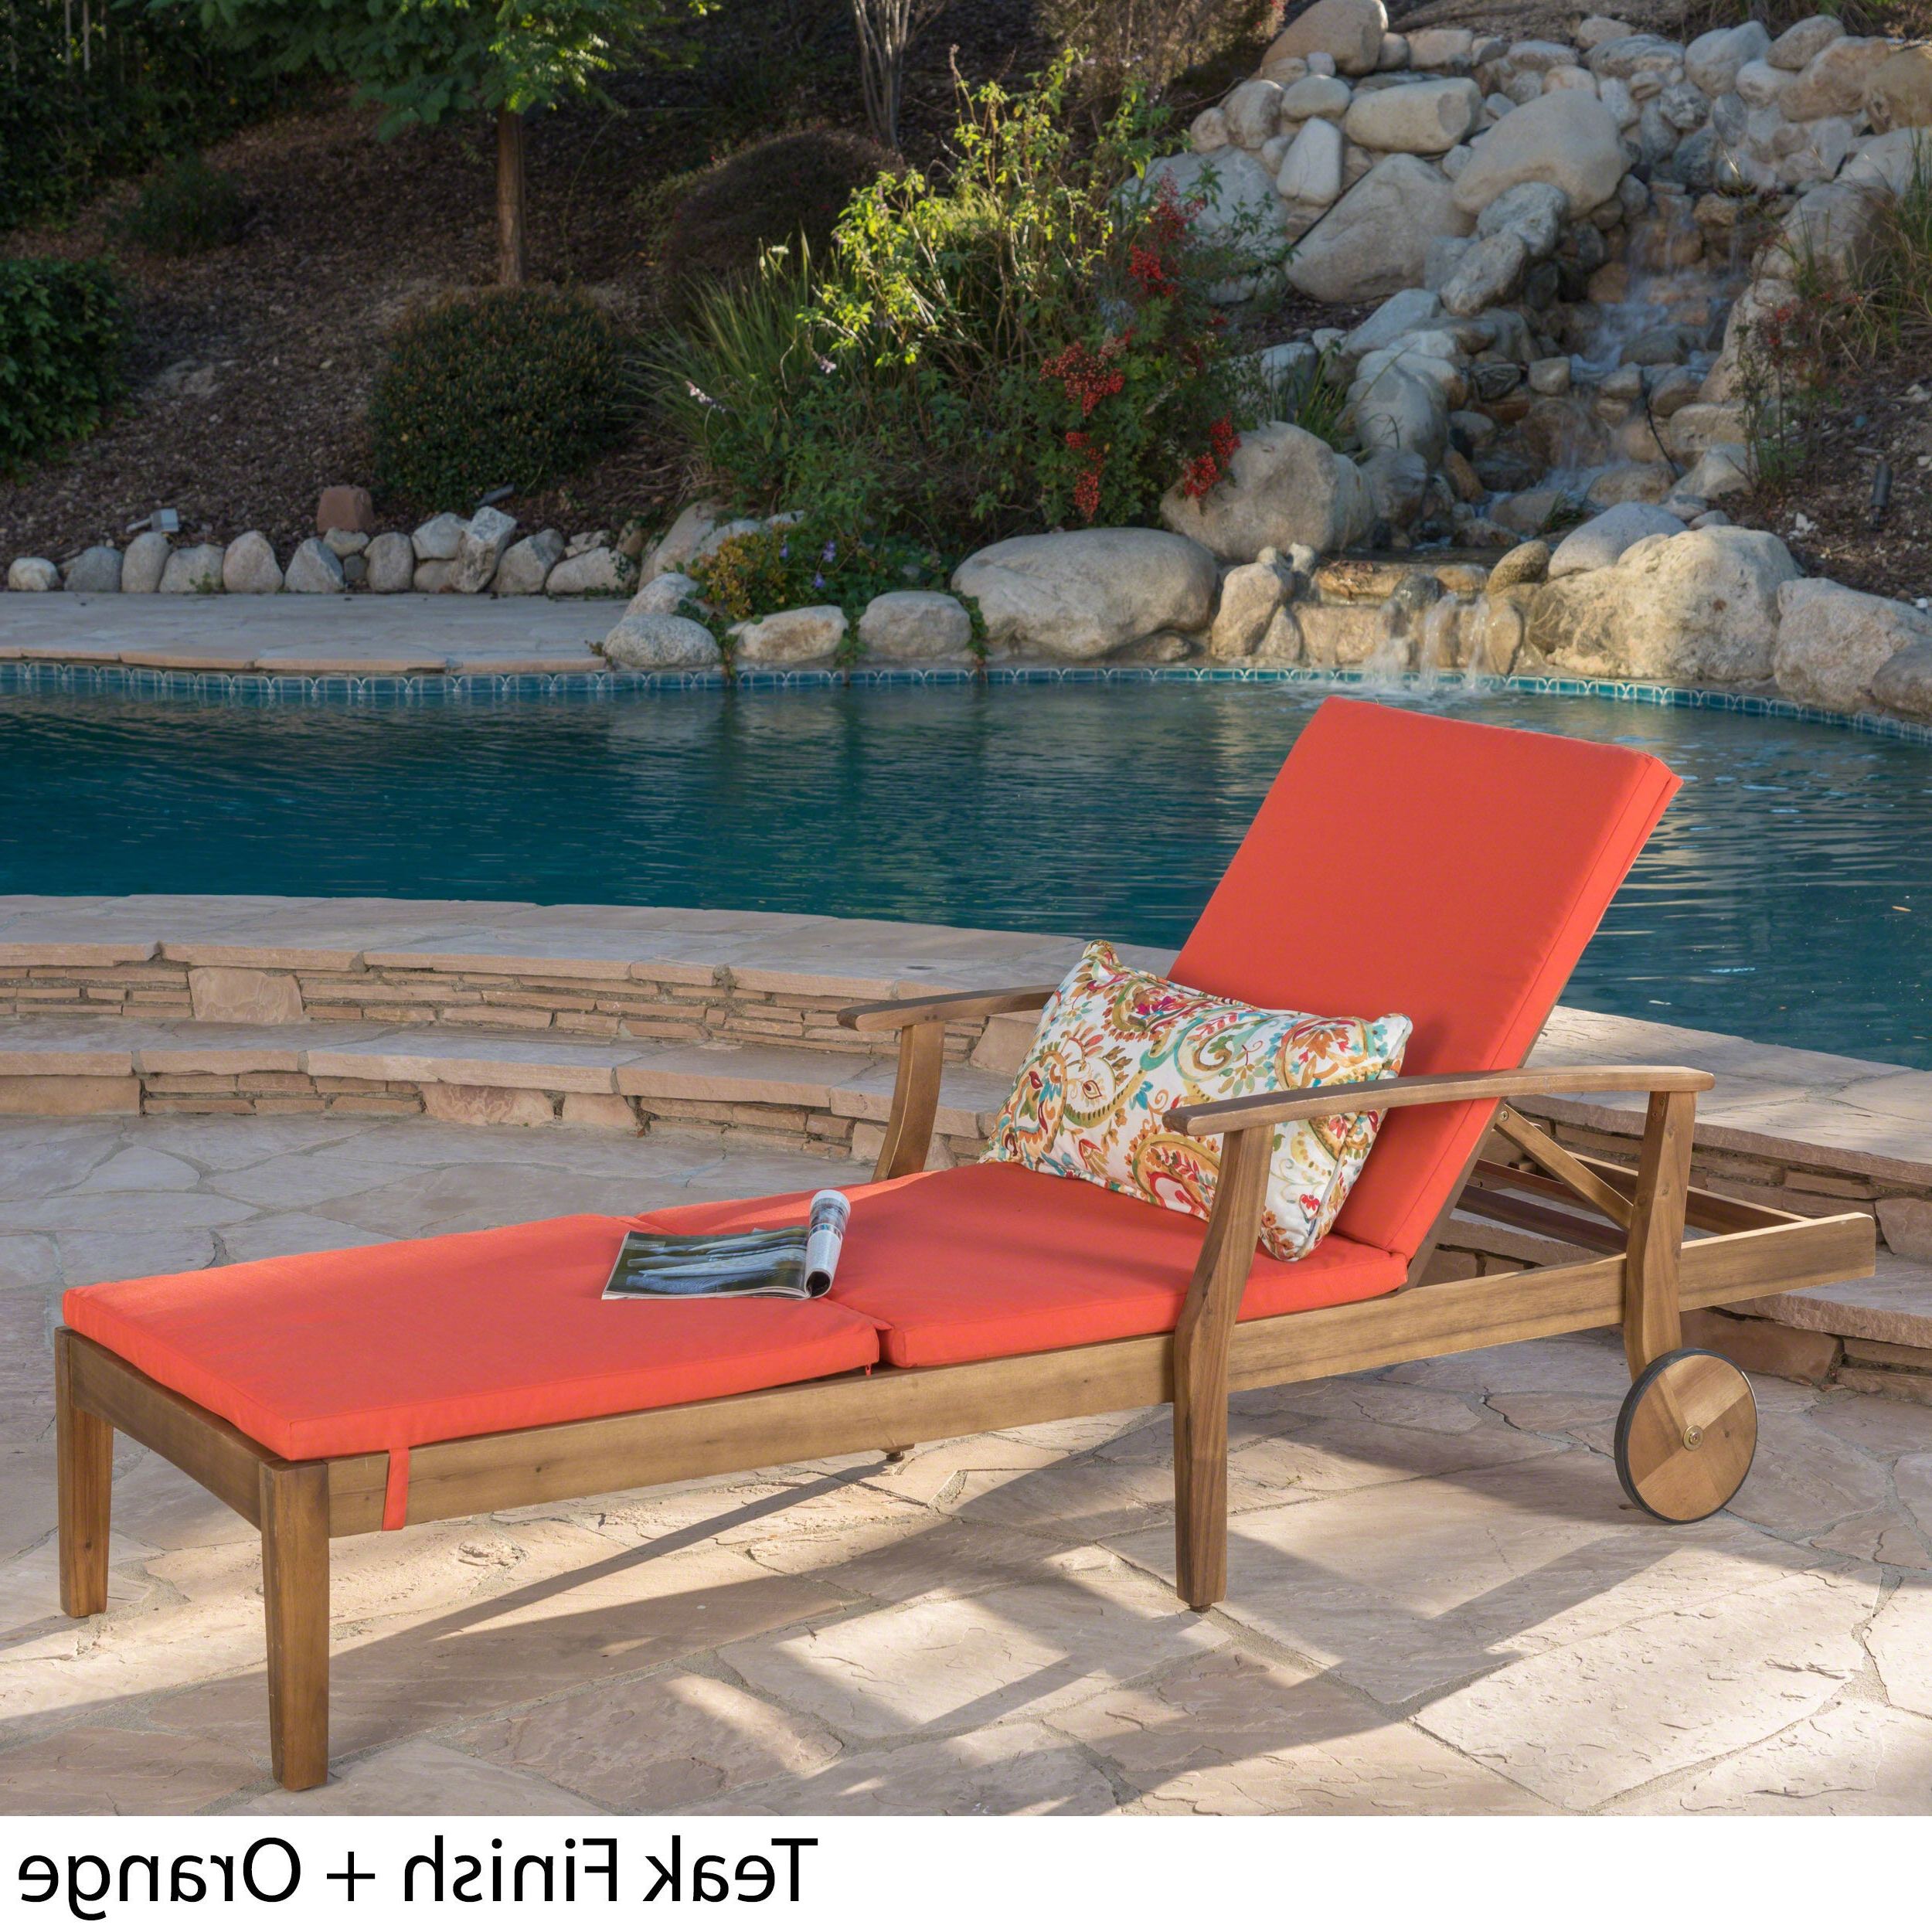 Perla Outdoor Acacia Wood Chaise Lounge With Cushionchristopher Knight Home Intended For Most Recent Havenside Home Surfside Rutkoske Outdoor Wood Chaise Lounges (View 24 of 25)